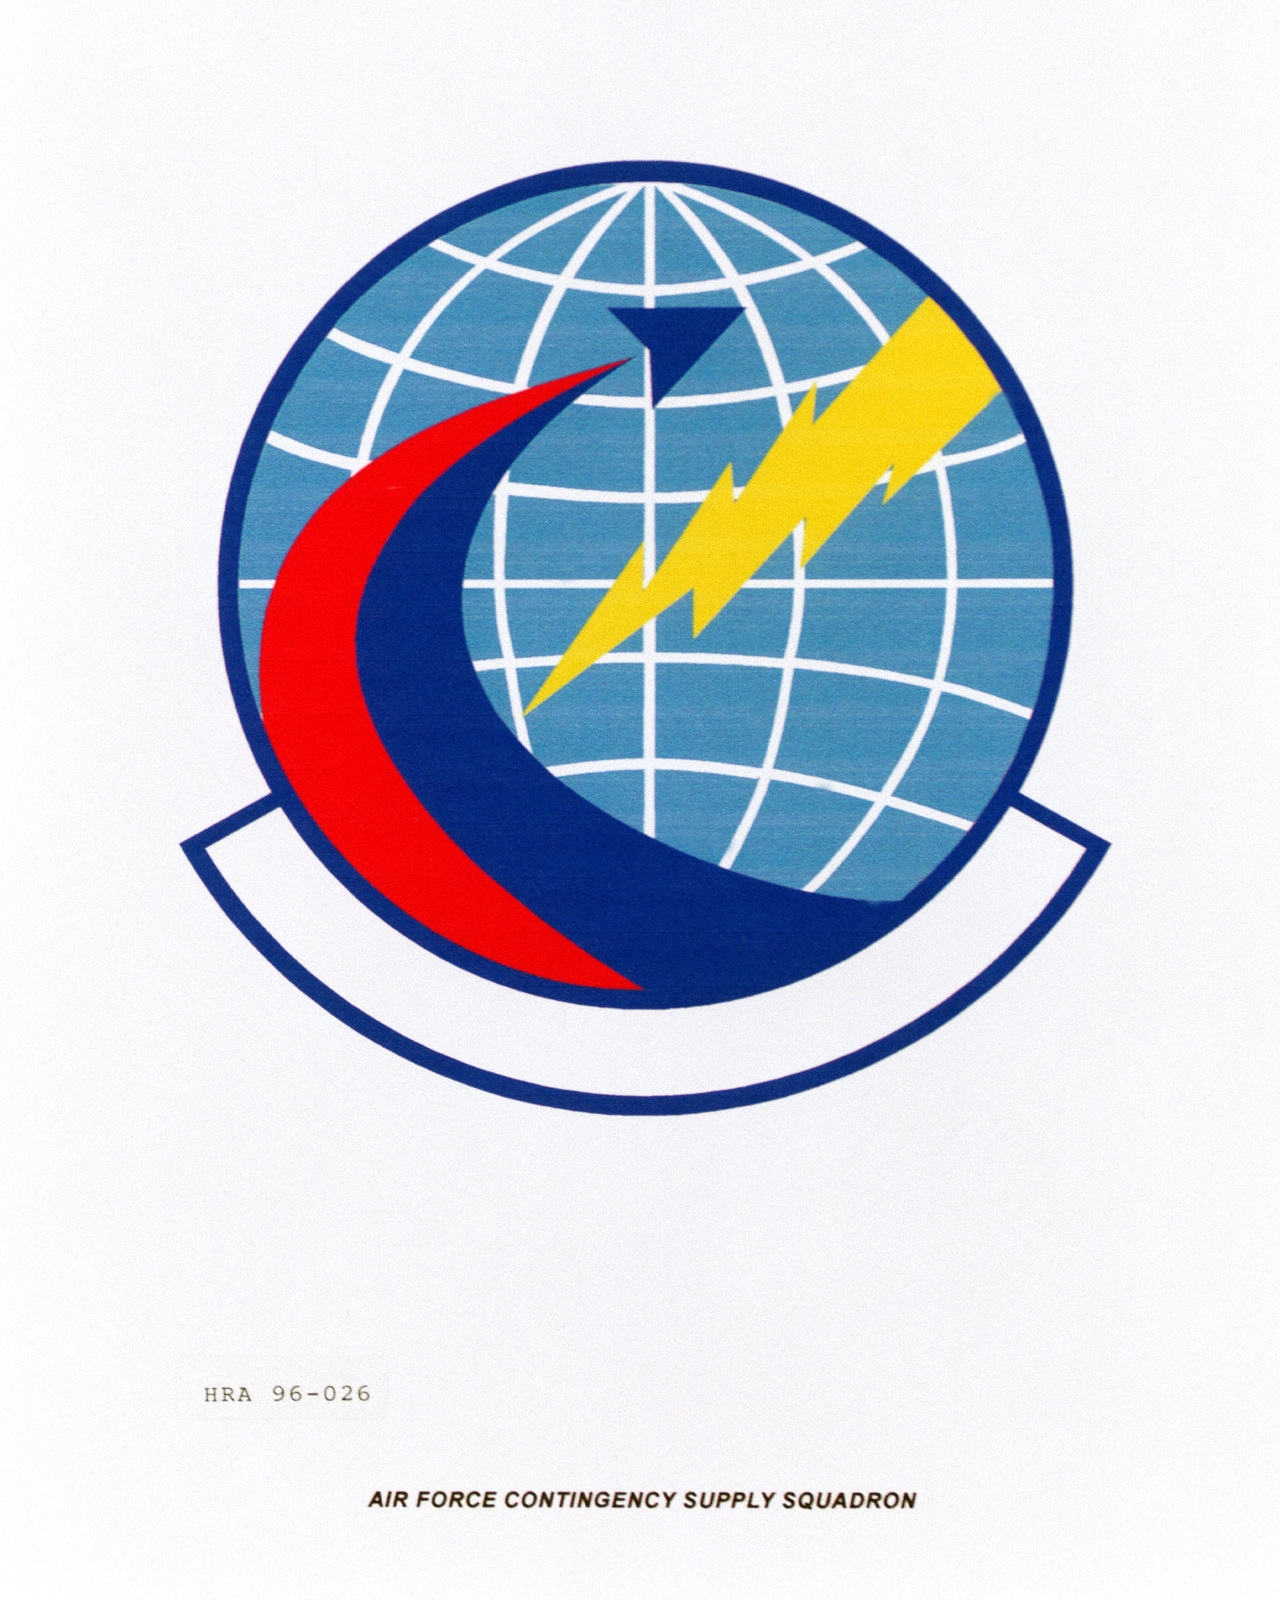 Approved insignia for the Air Force Contingency Supply Squadron Exact Date Shot Unknown